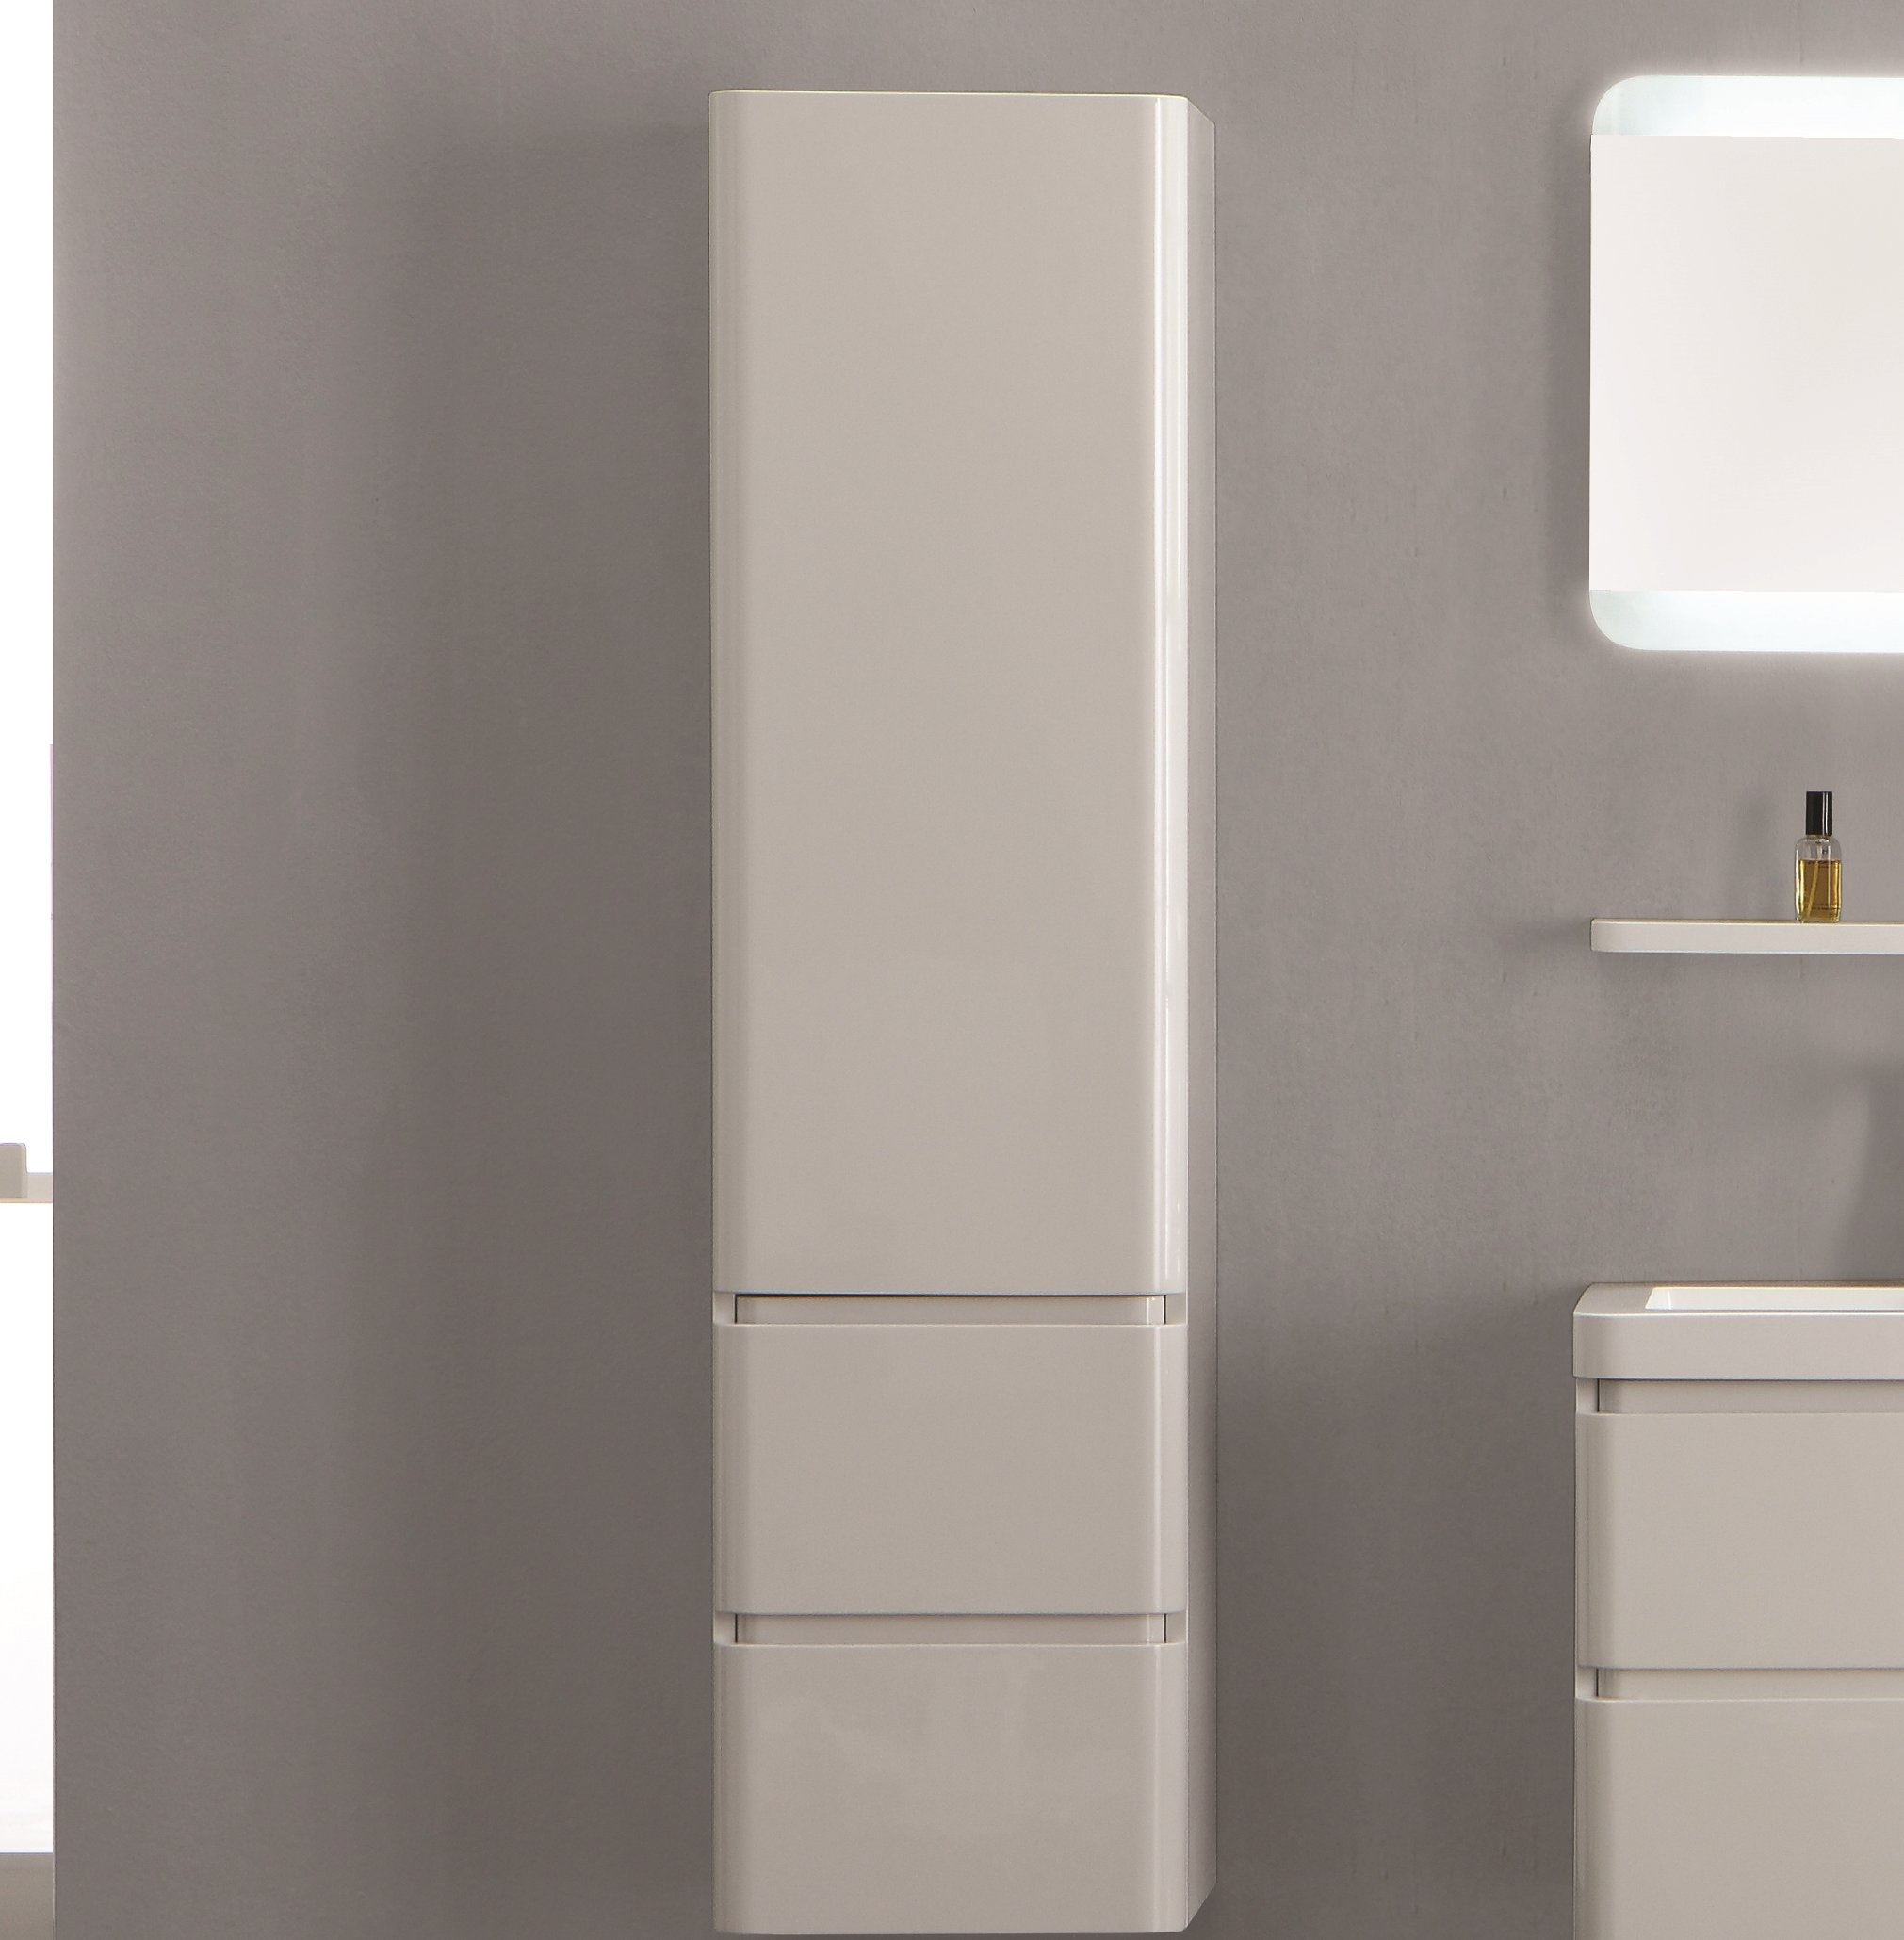 Cristina 40 X 155cm Wall Mounted Tall Bathroom Cabinet for dimensions 2021 X 2059